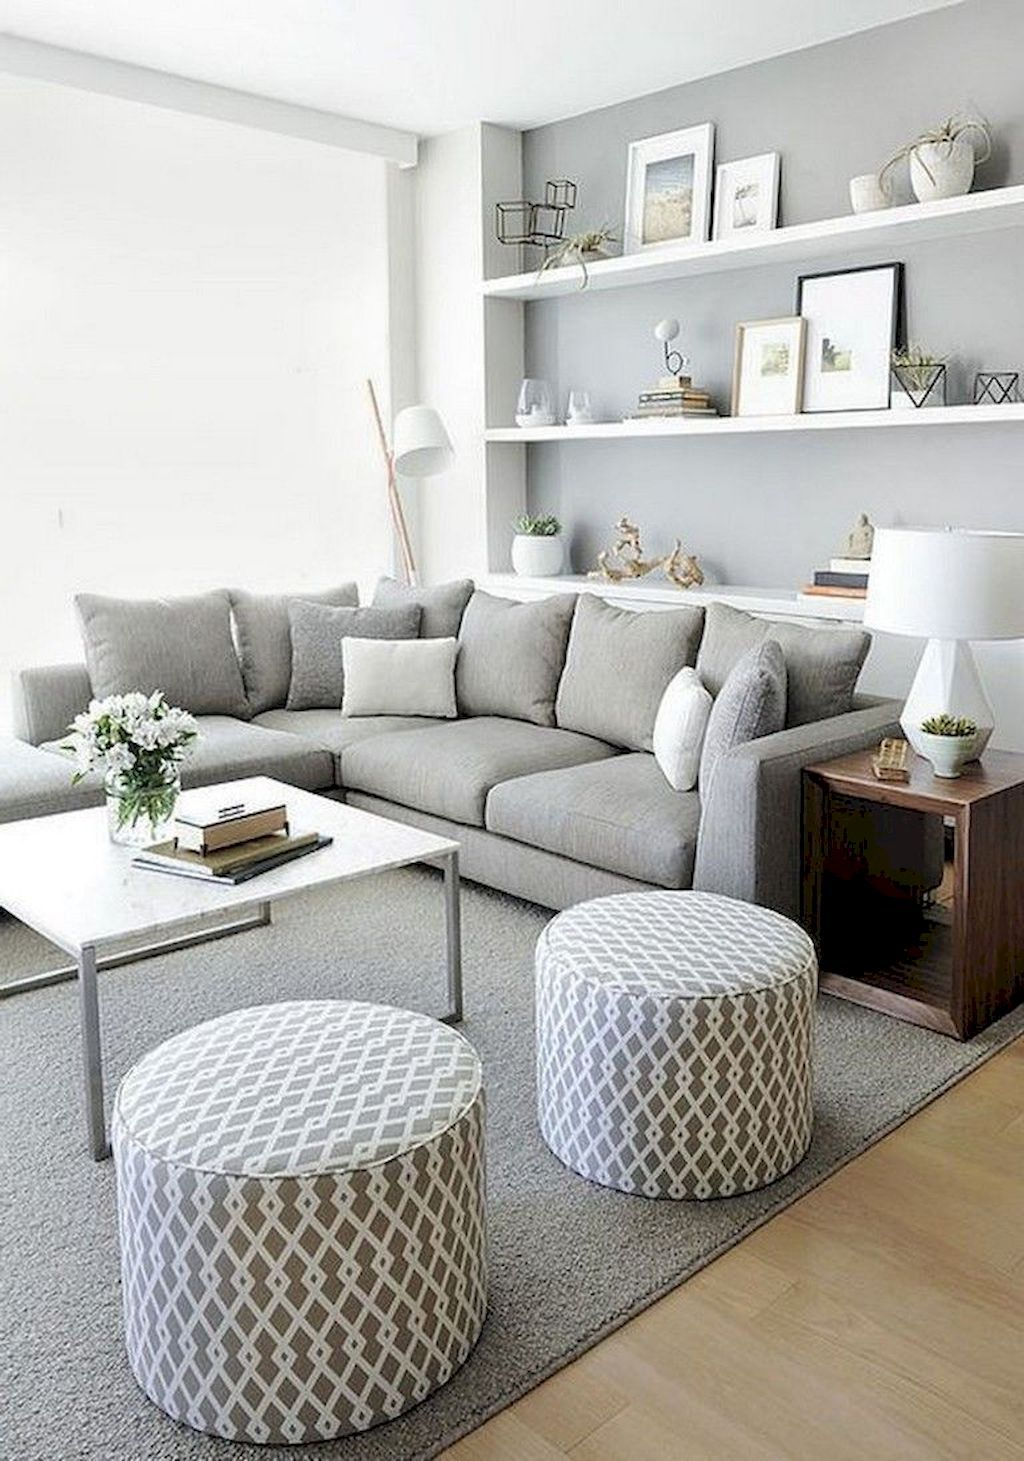 70 Best Modern Small Living Room Decor Ideas #havenlylivingroom